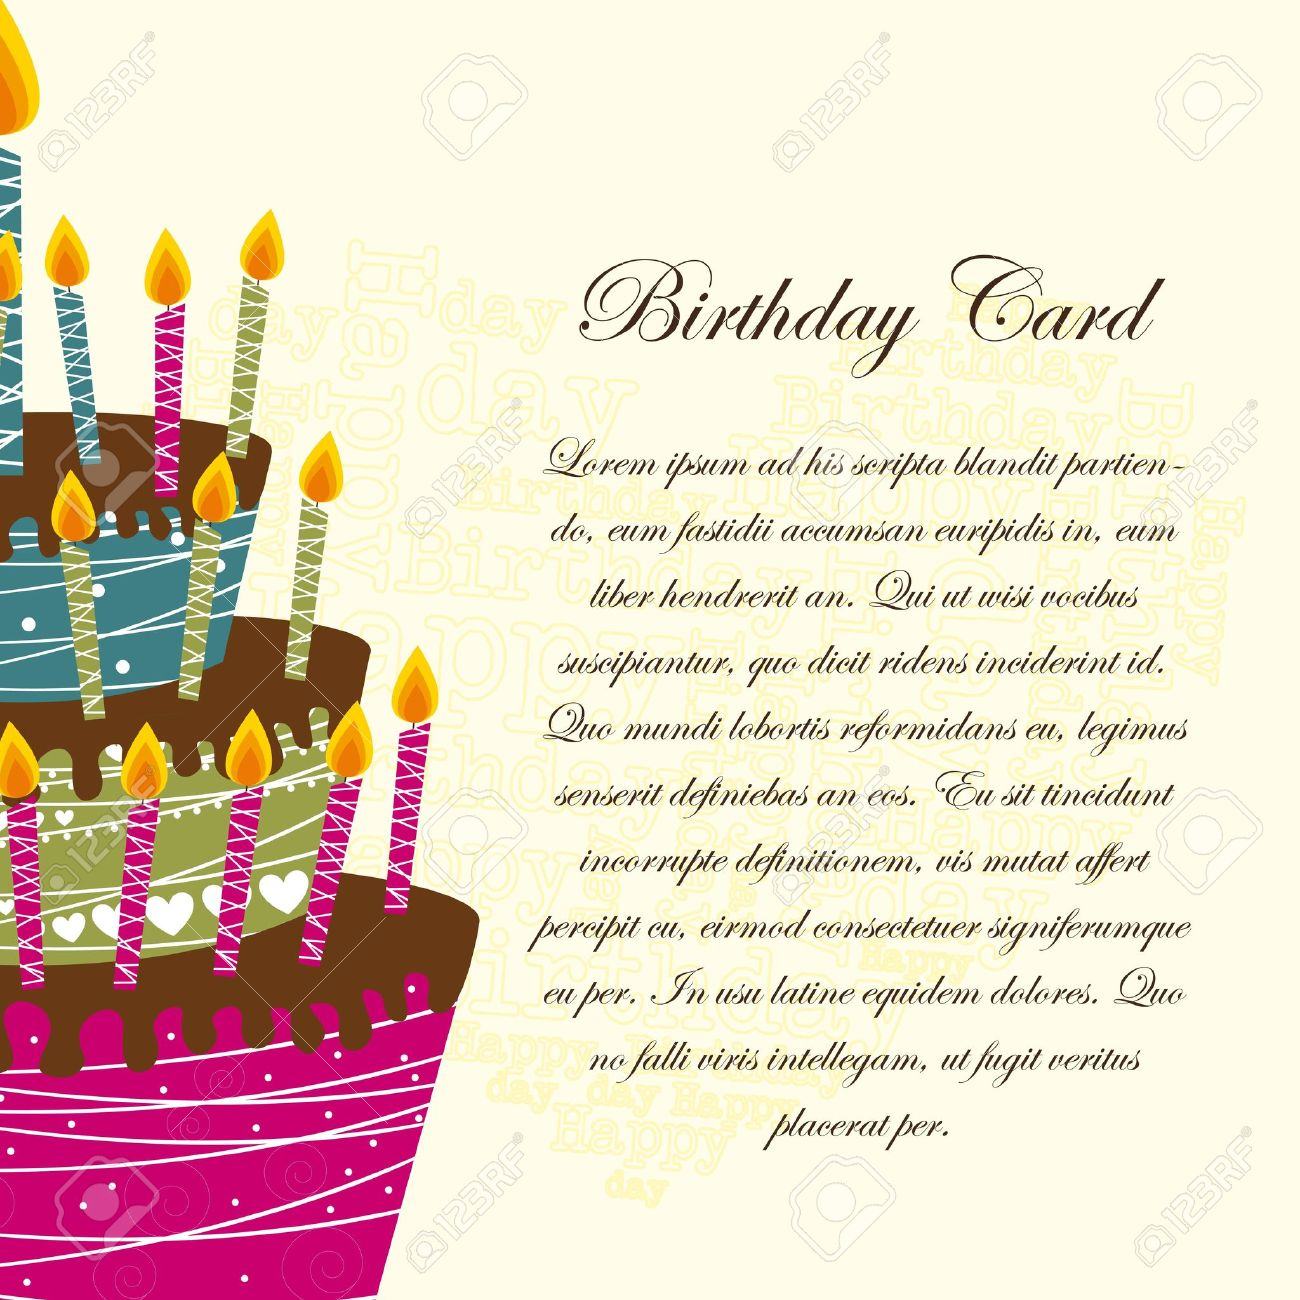 Birthday Card With Cake Over Beige Background Royalty Free – Greeting Card Invitation